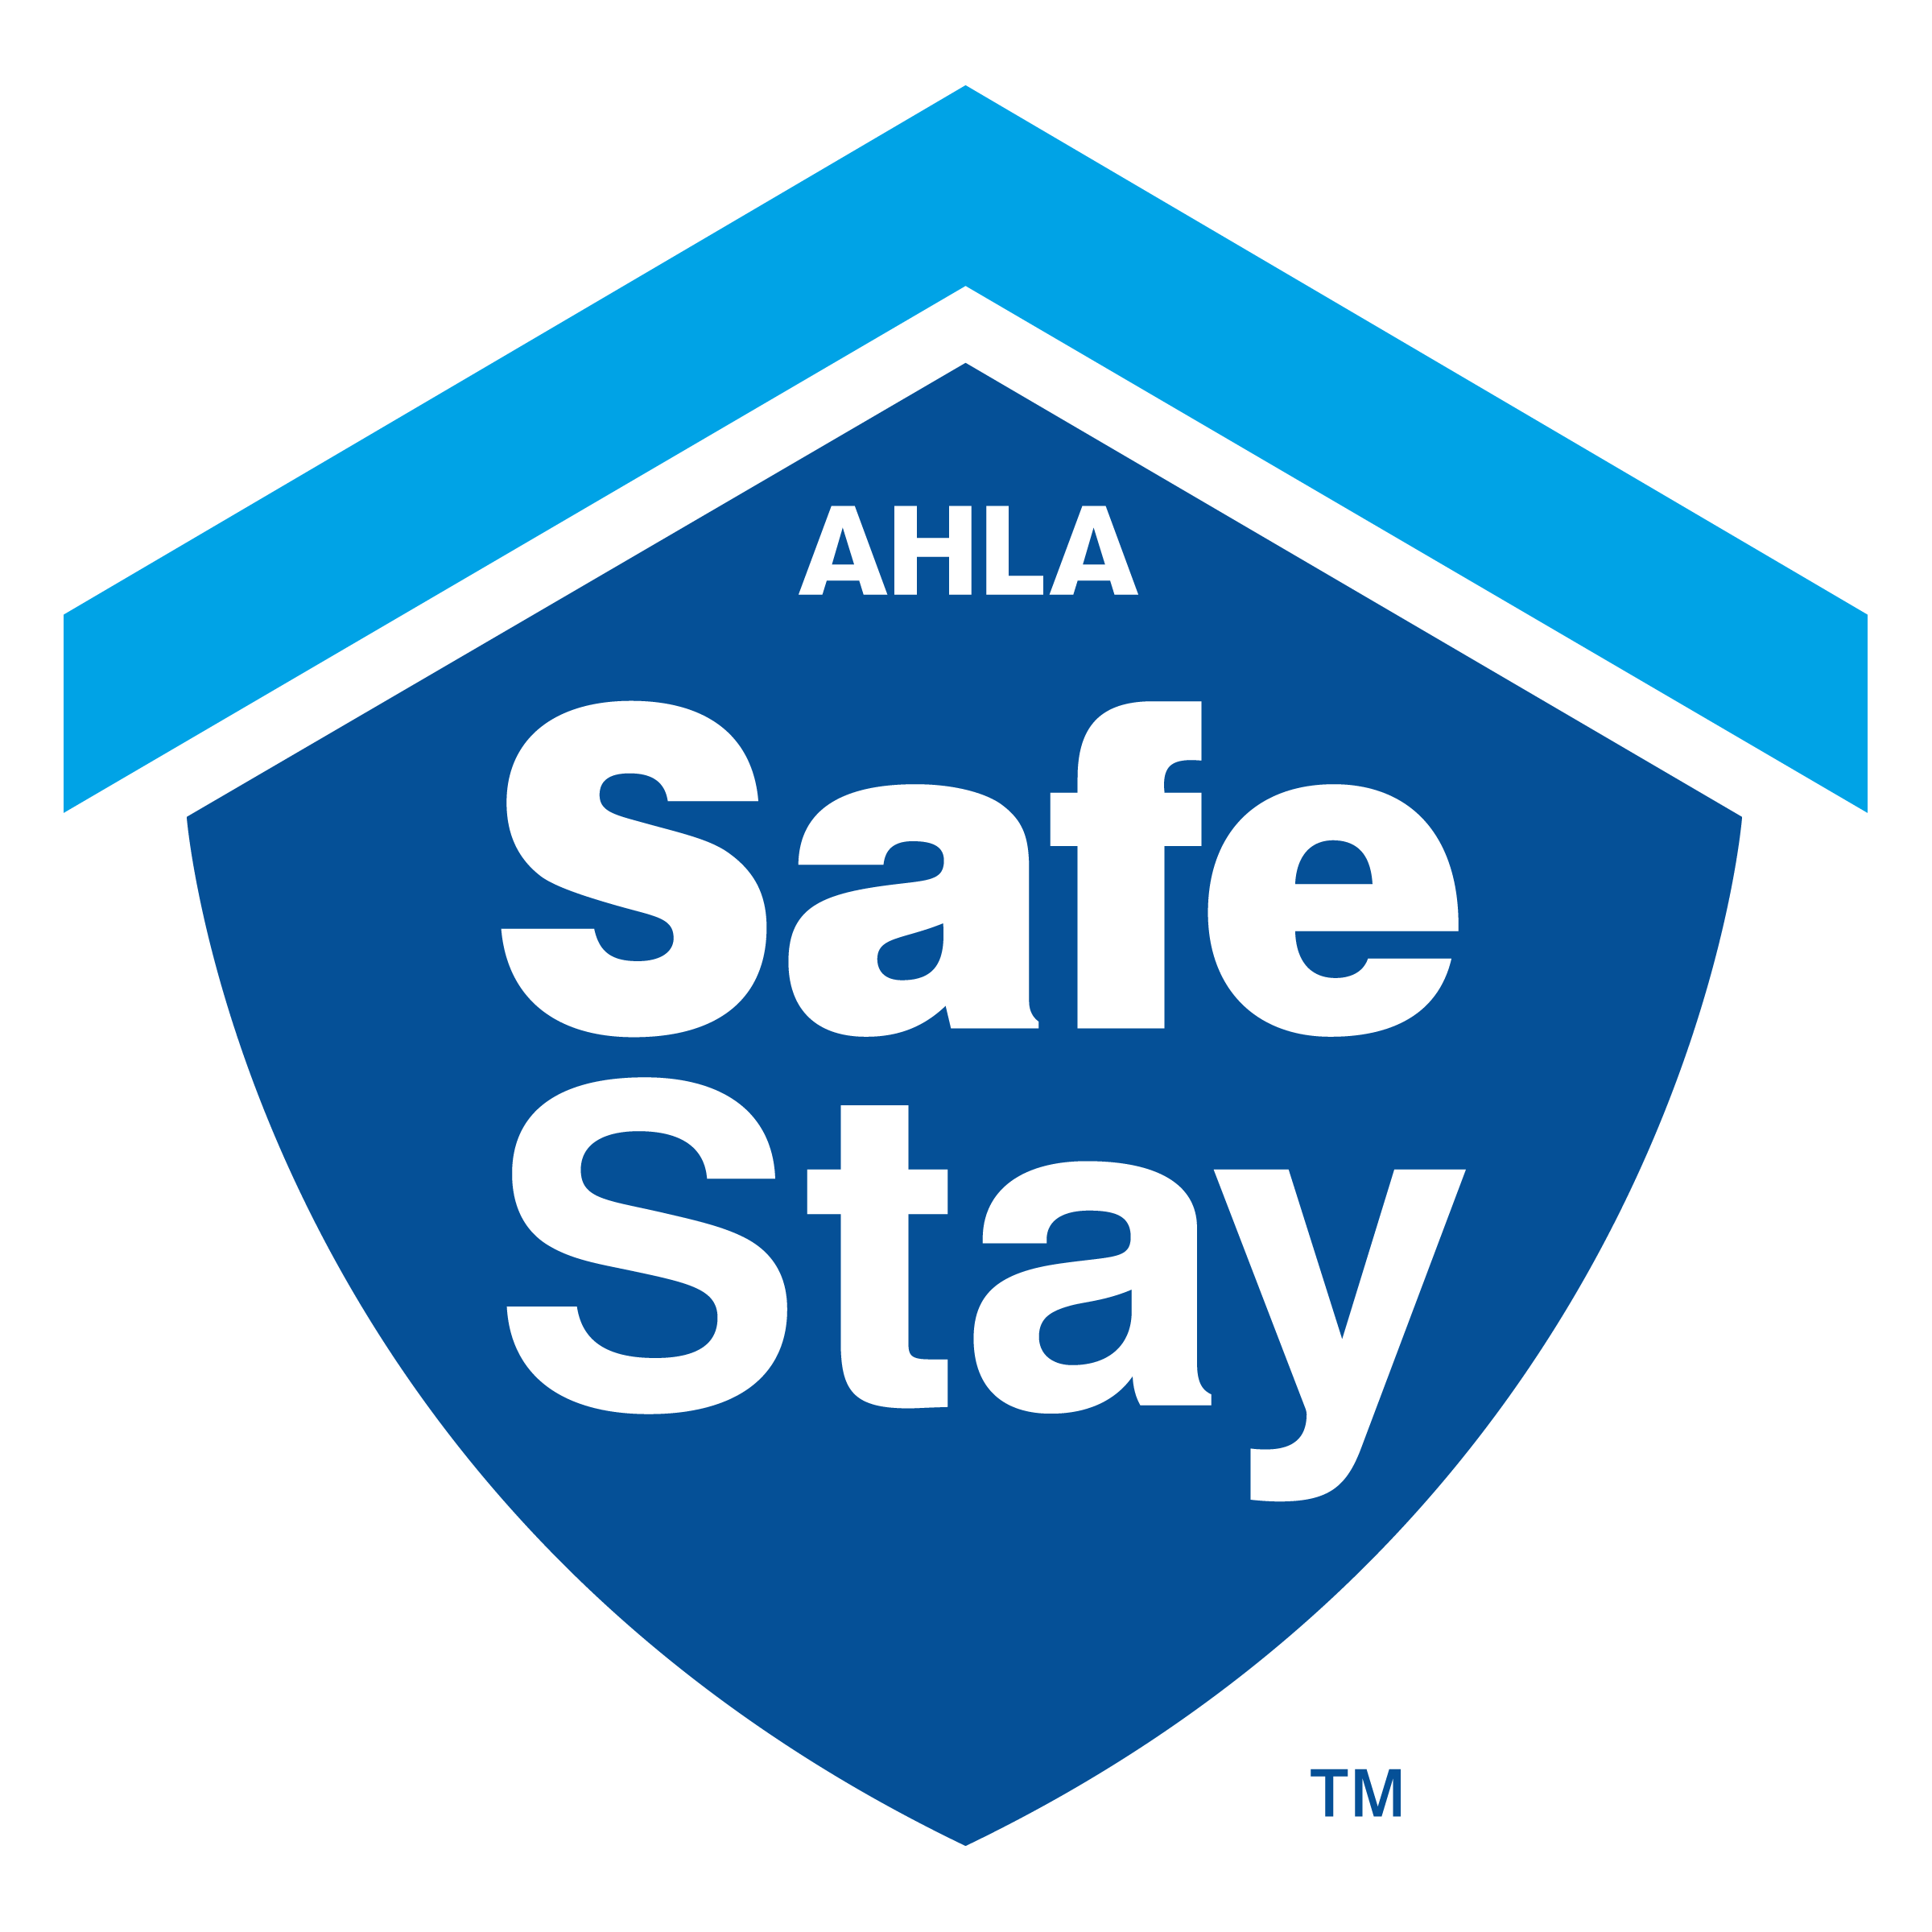 AHLA Stay Safe Certified